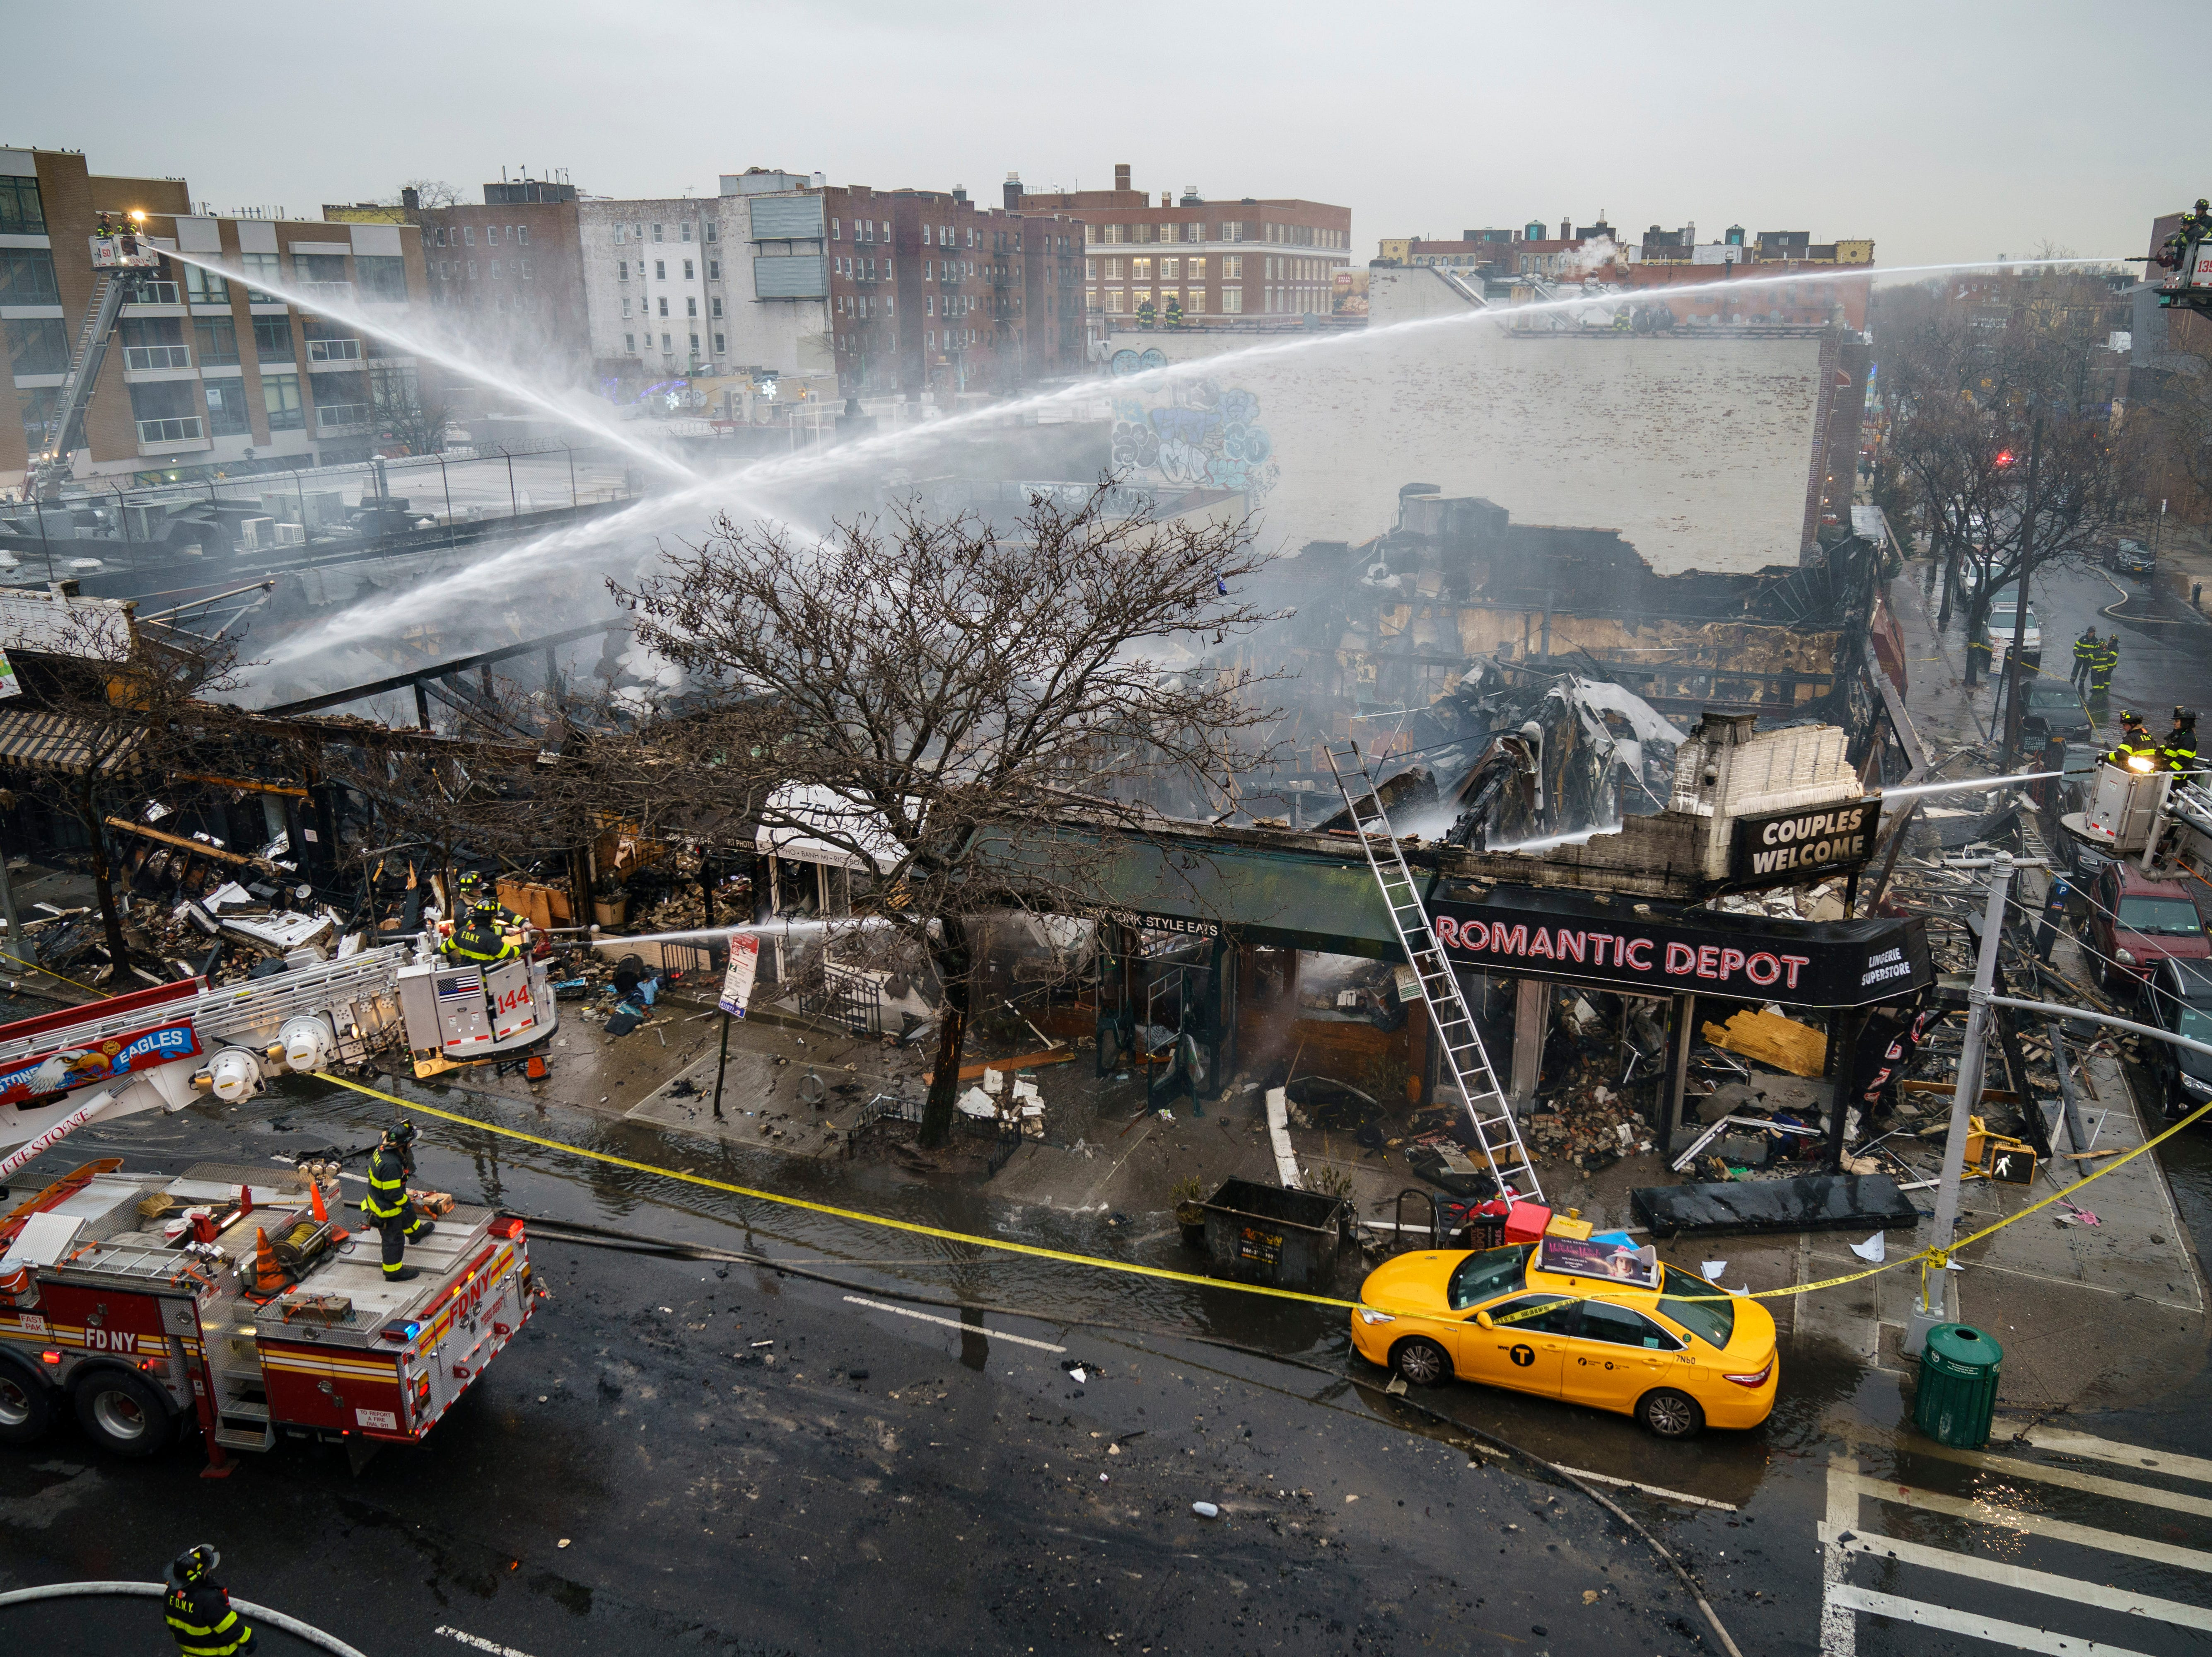 Firefighters work to put out the smoldering remains of an overnight fire that engulfed six businesses on Queens Boulevard, Dec. 13, 2018 in the Queens borough of New York City. A dozen people were injured, including six firefighters. The cause of the fire is still under investigation.